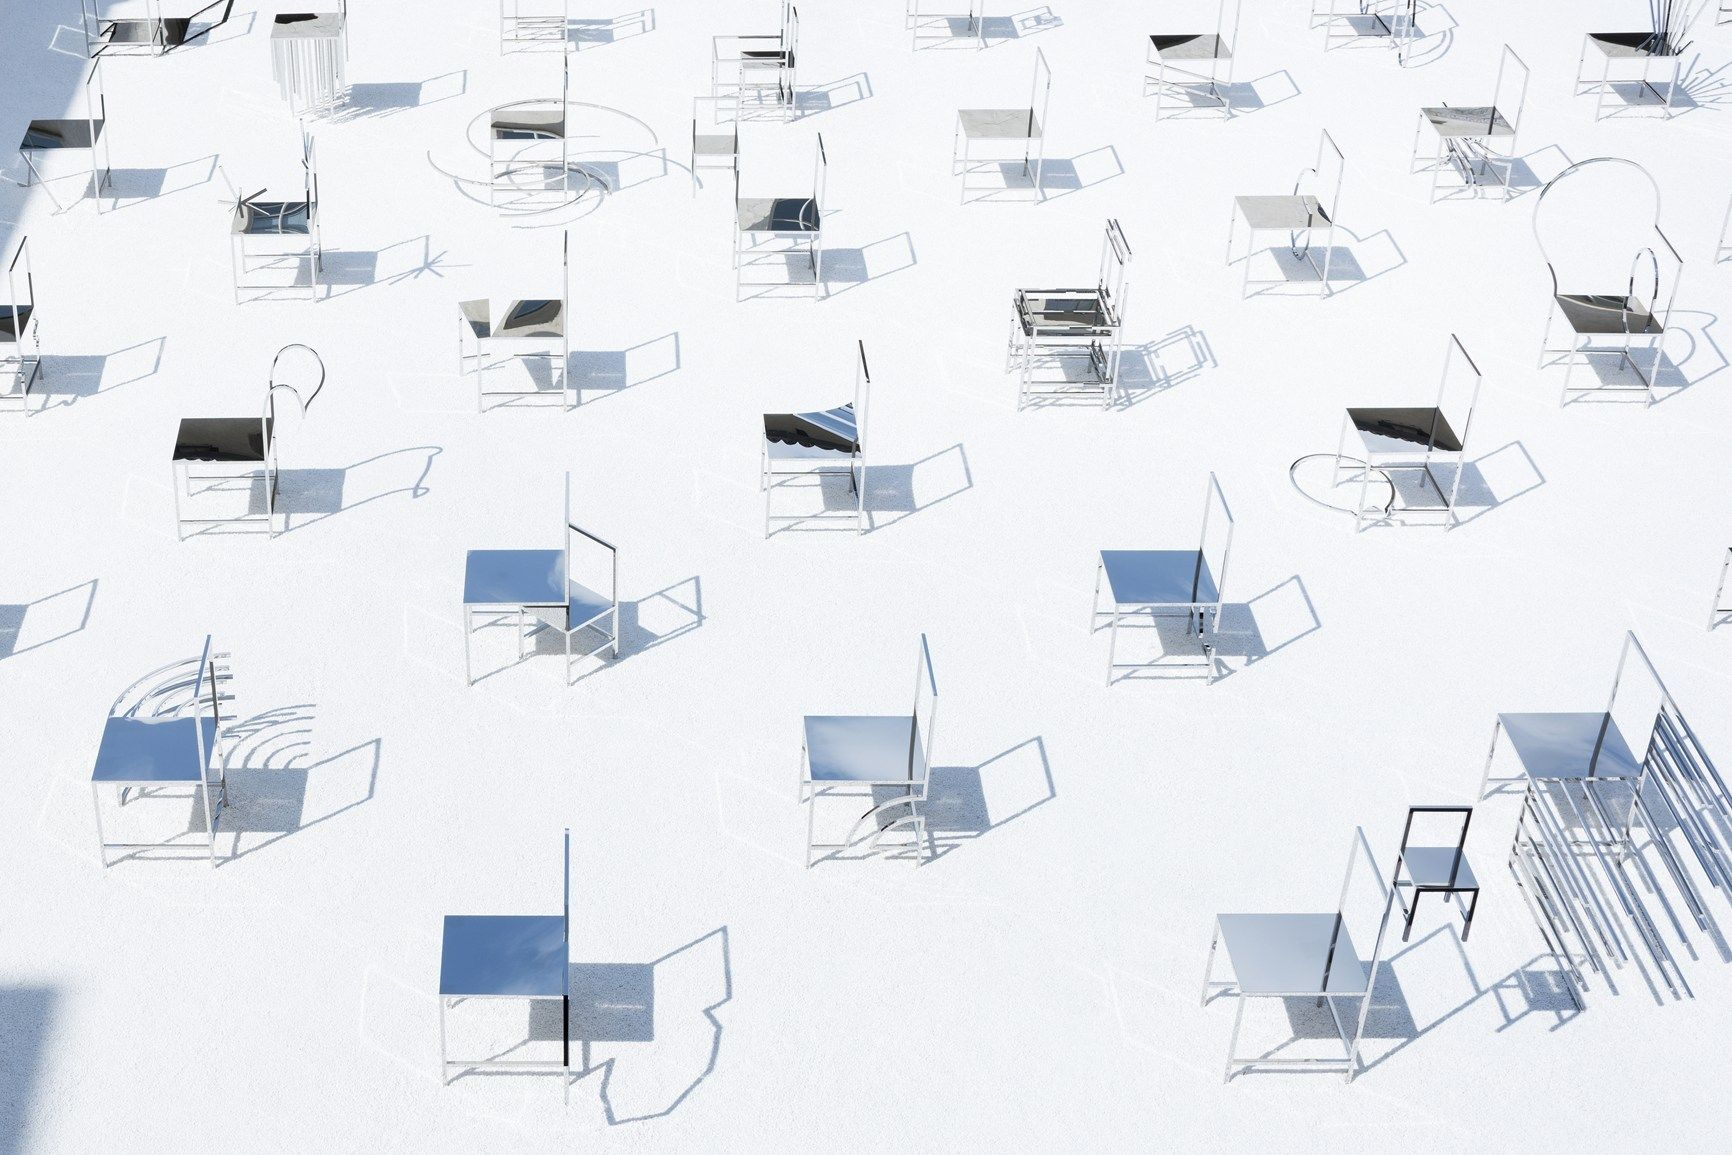 Charmant 50 Manga Chairs   Photo By Takumi Ota